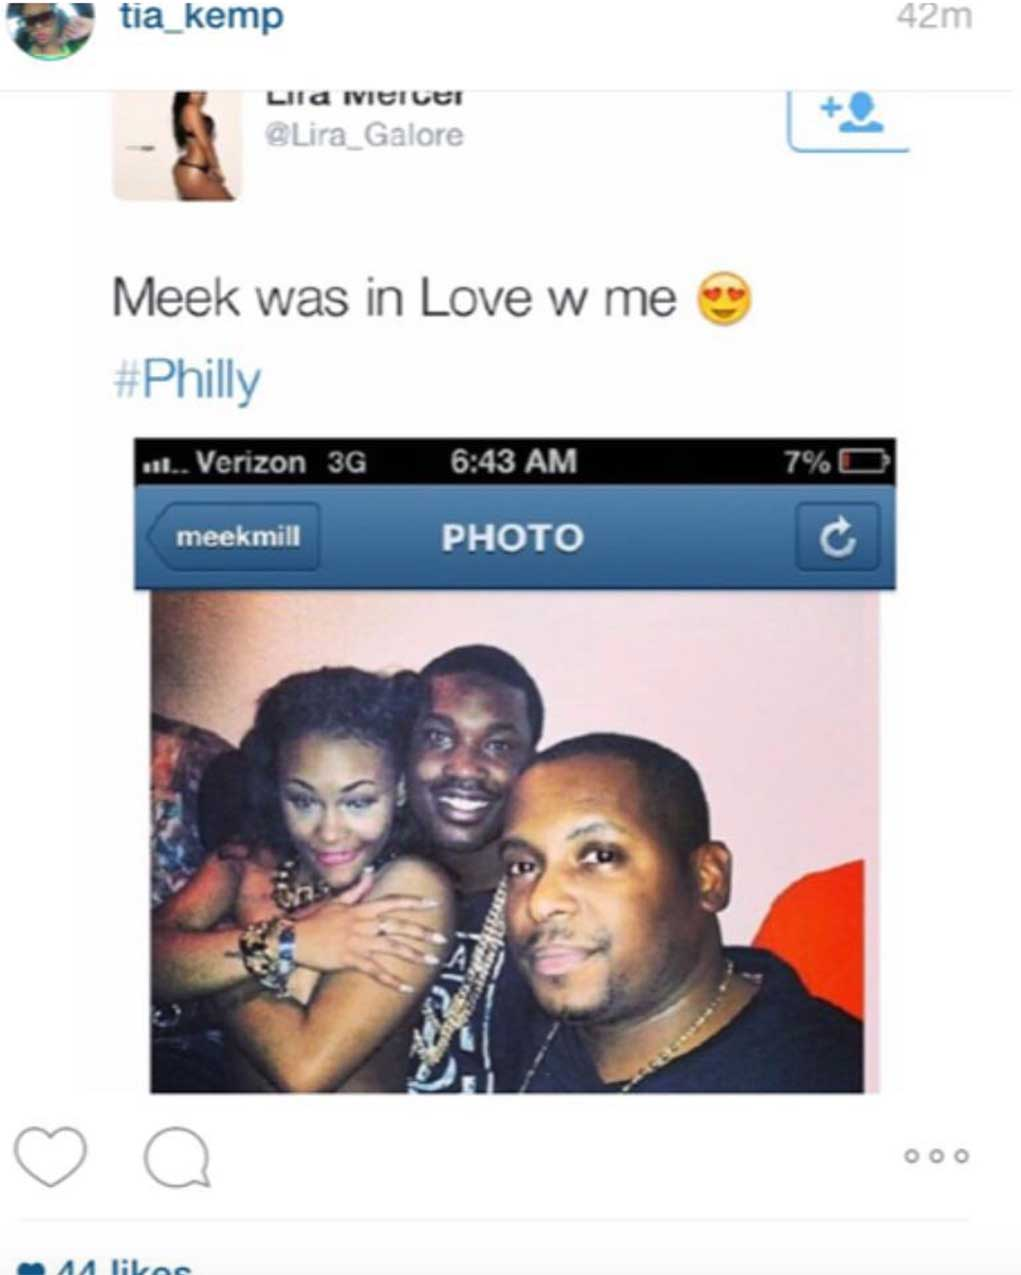 Tia-Kemp-Airs-Out-Lia-Galore-and-Meek-Mill